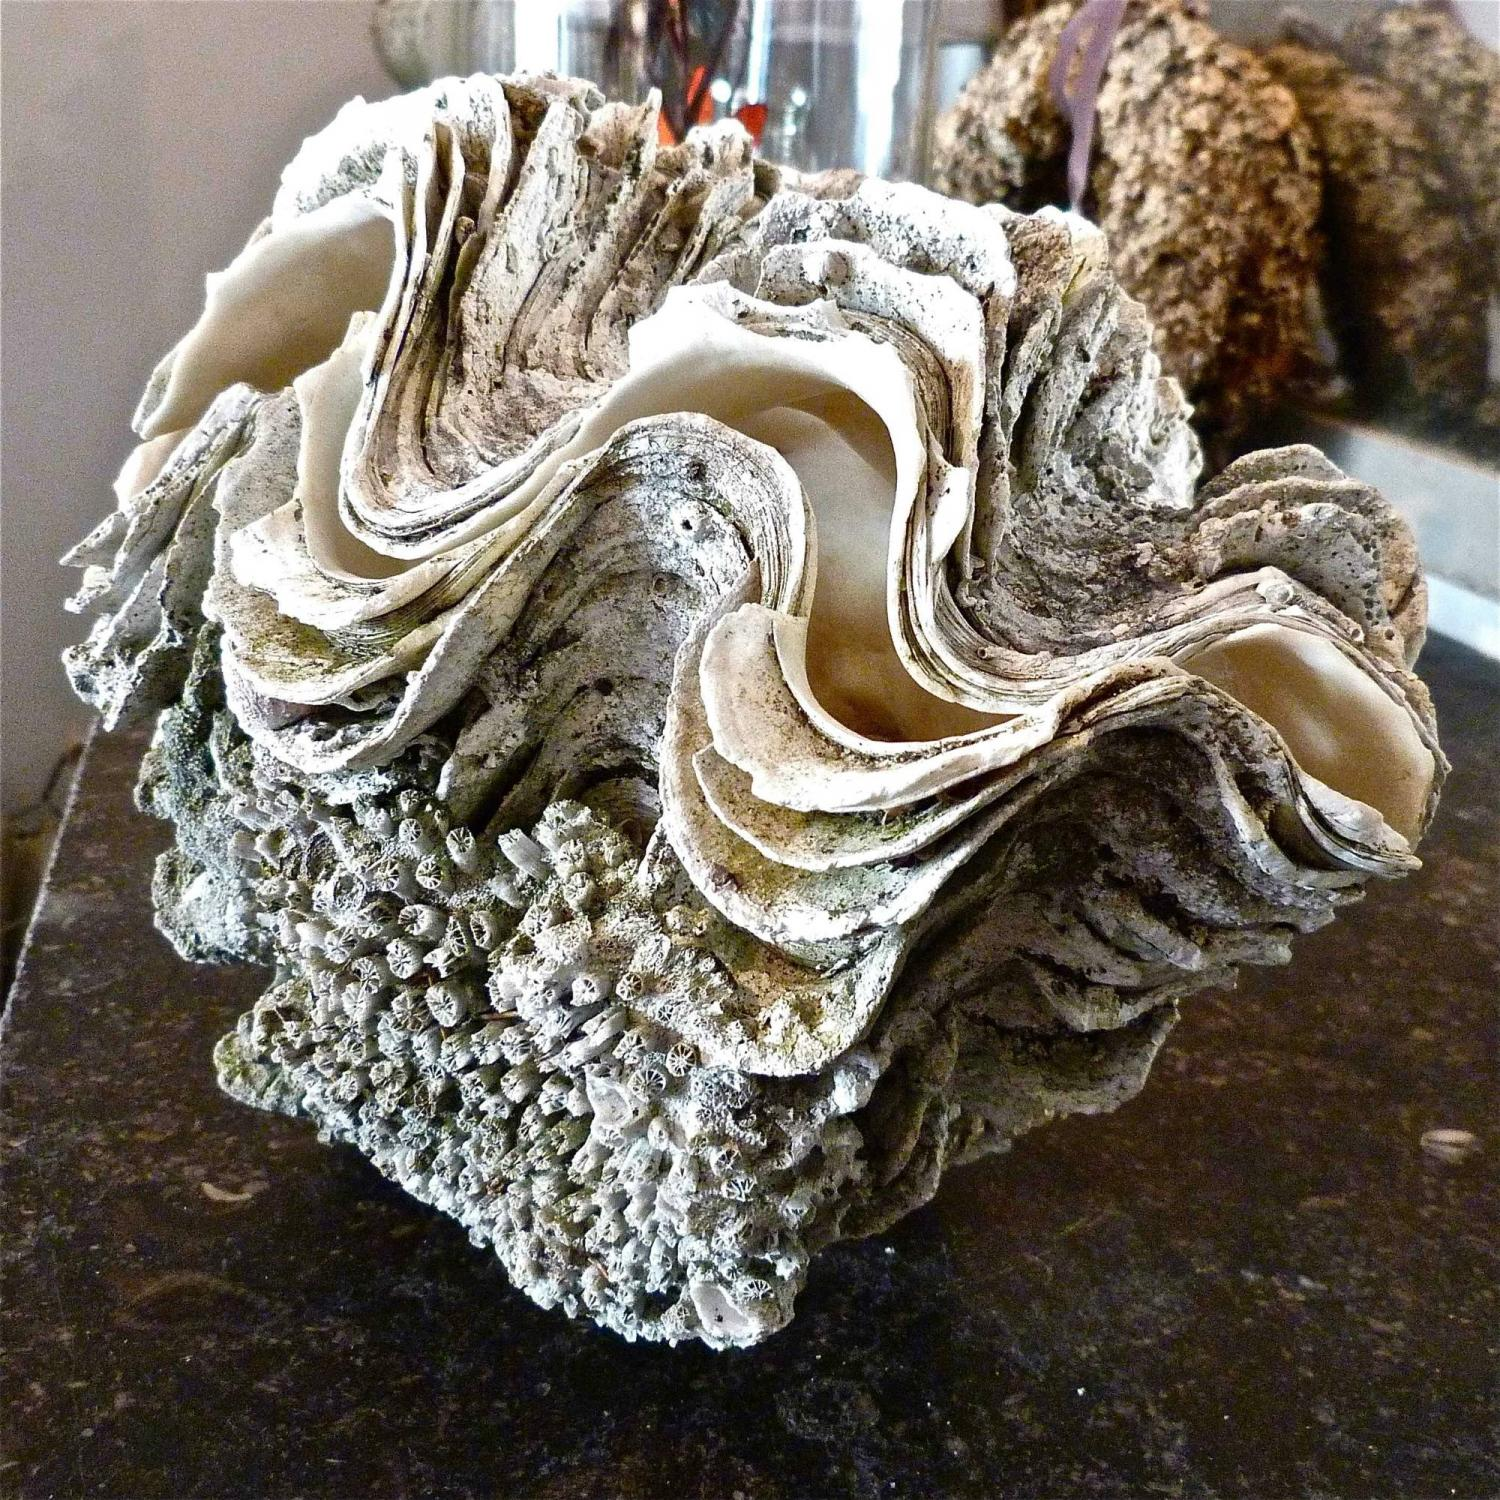 COMPLETE SOUTH PACIFIC GIANT CLAM SHELL